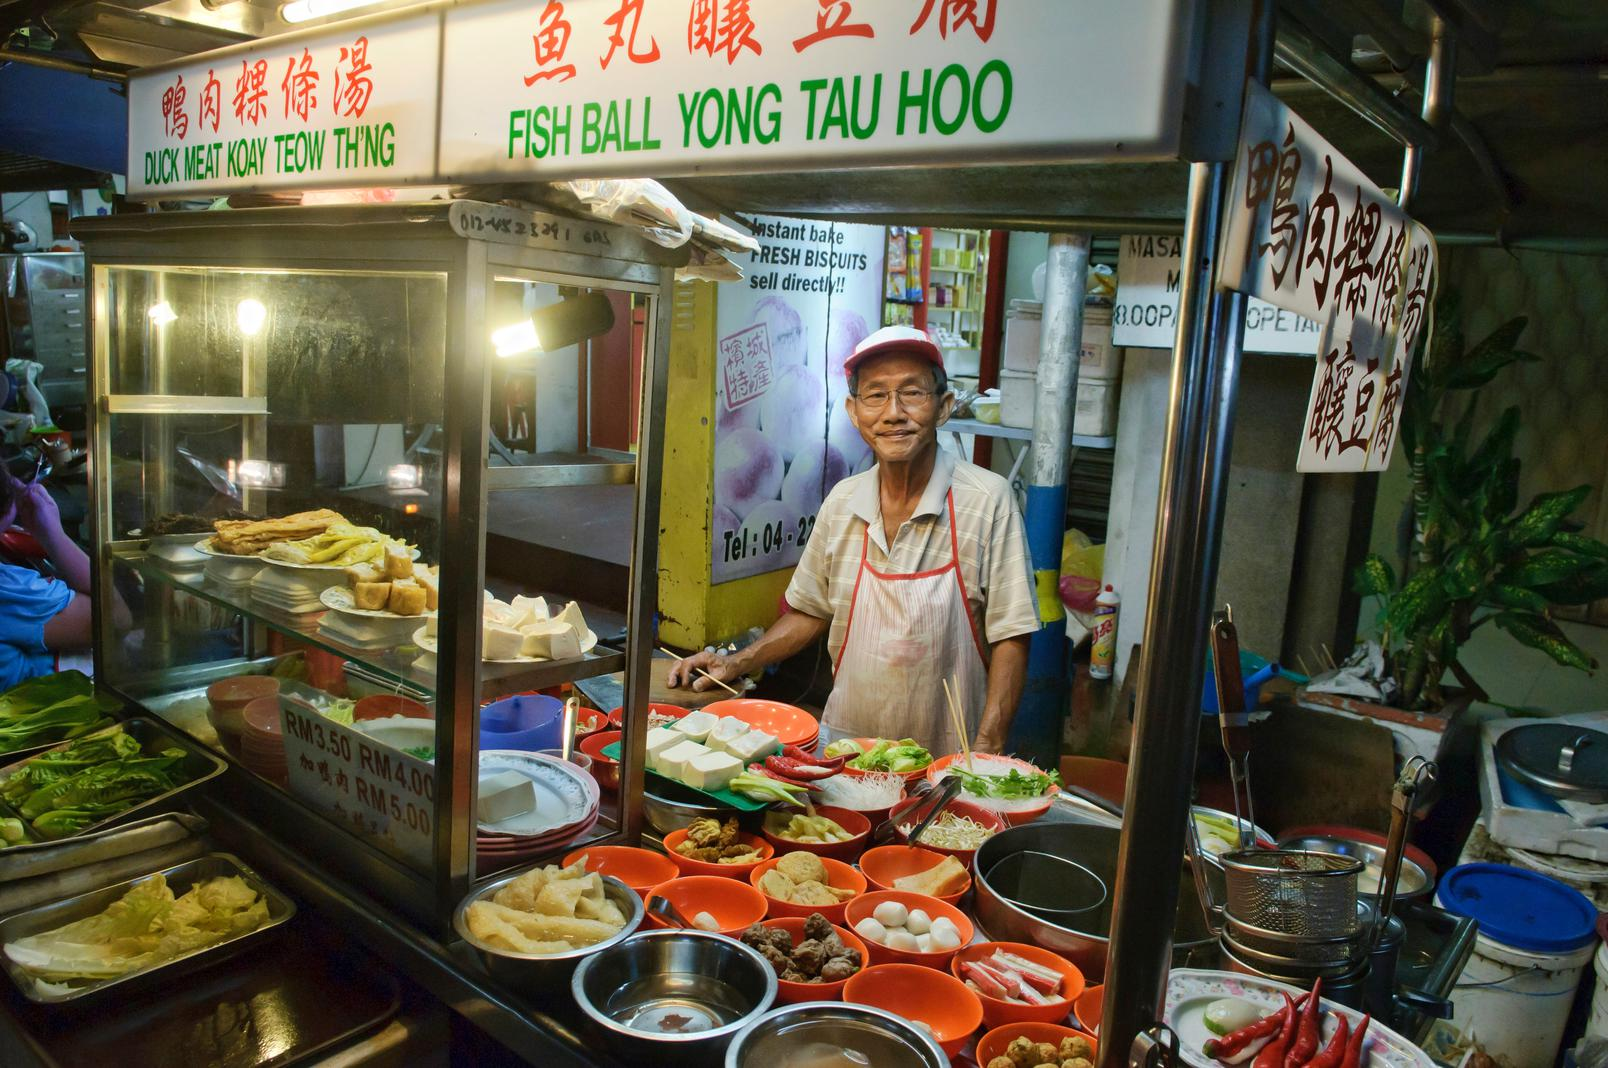 Penang's Duck Meat Koay Teow Th'ng and Fish Ball Yong Tau Hoo